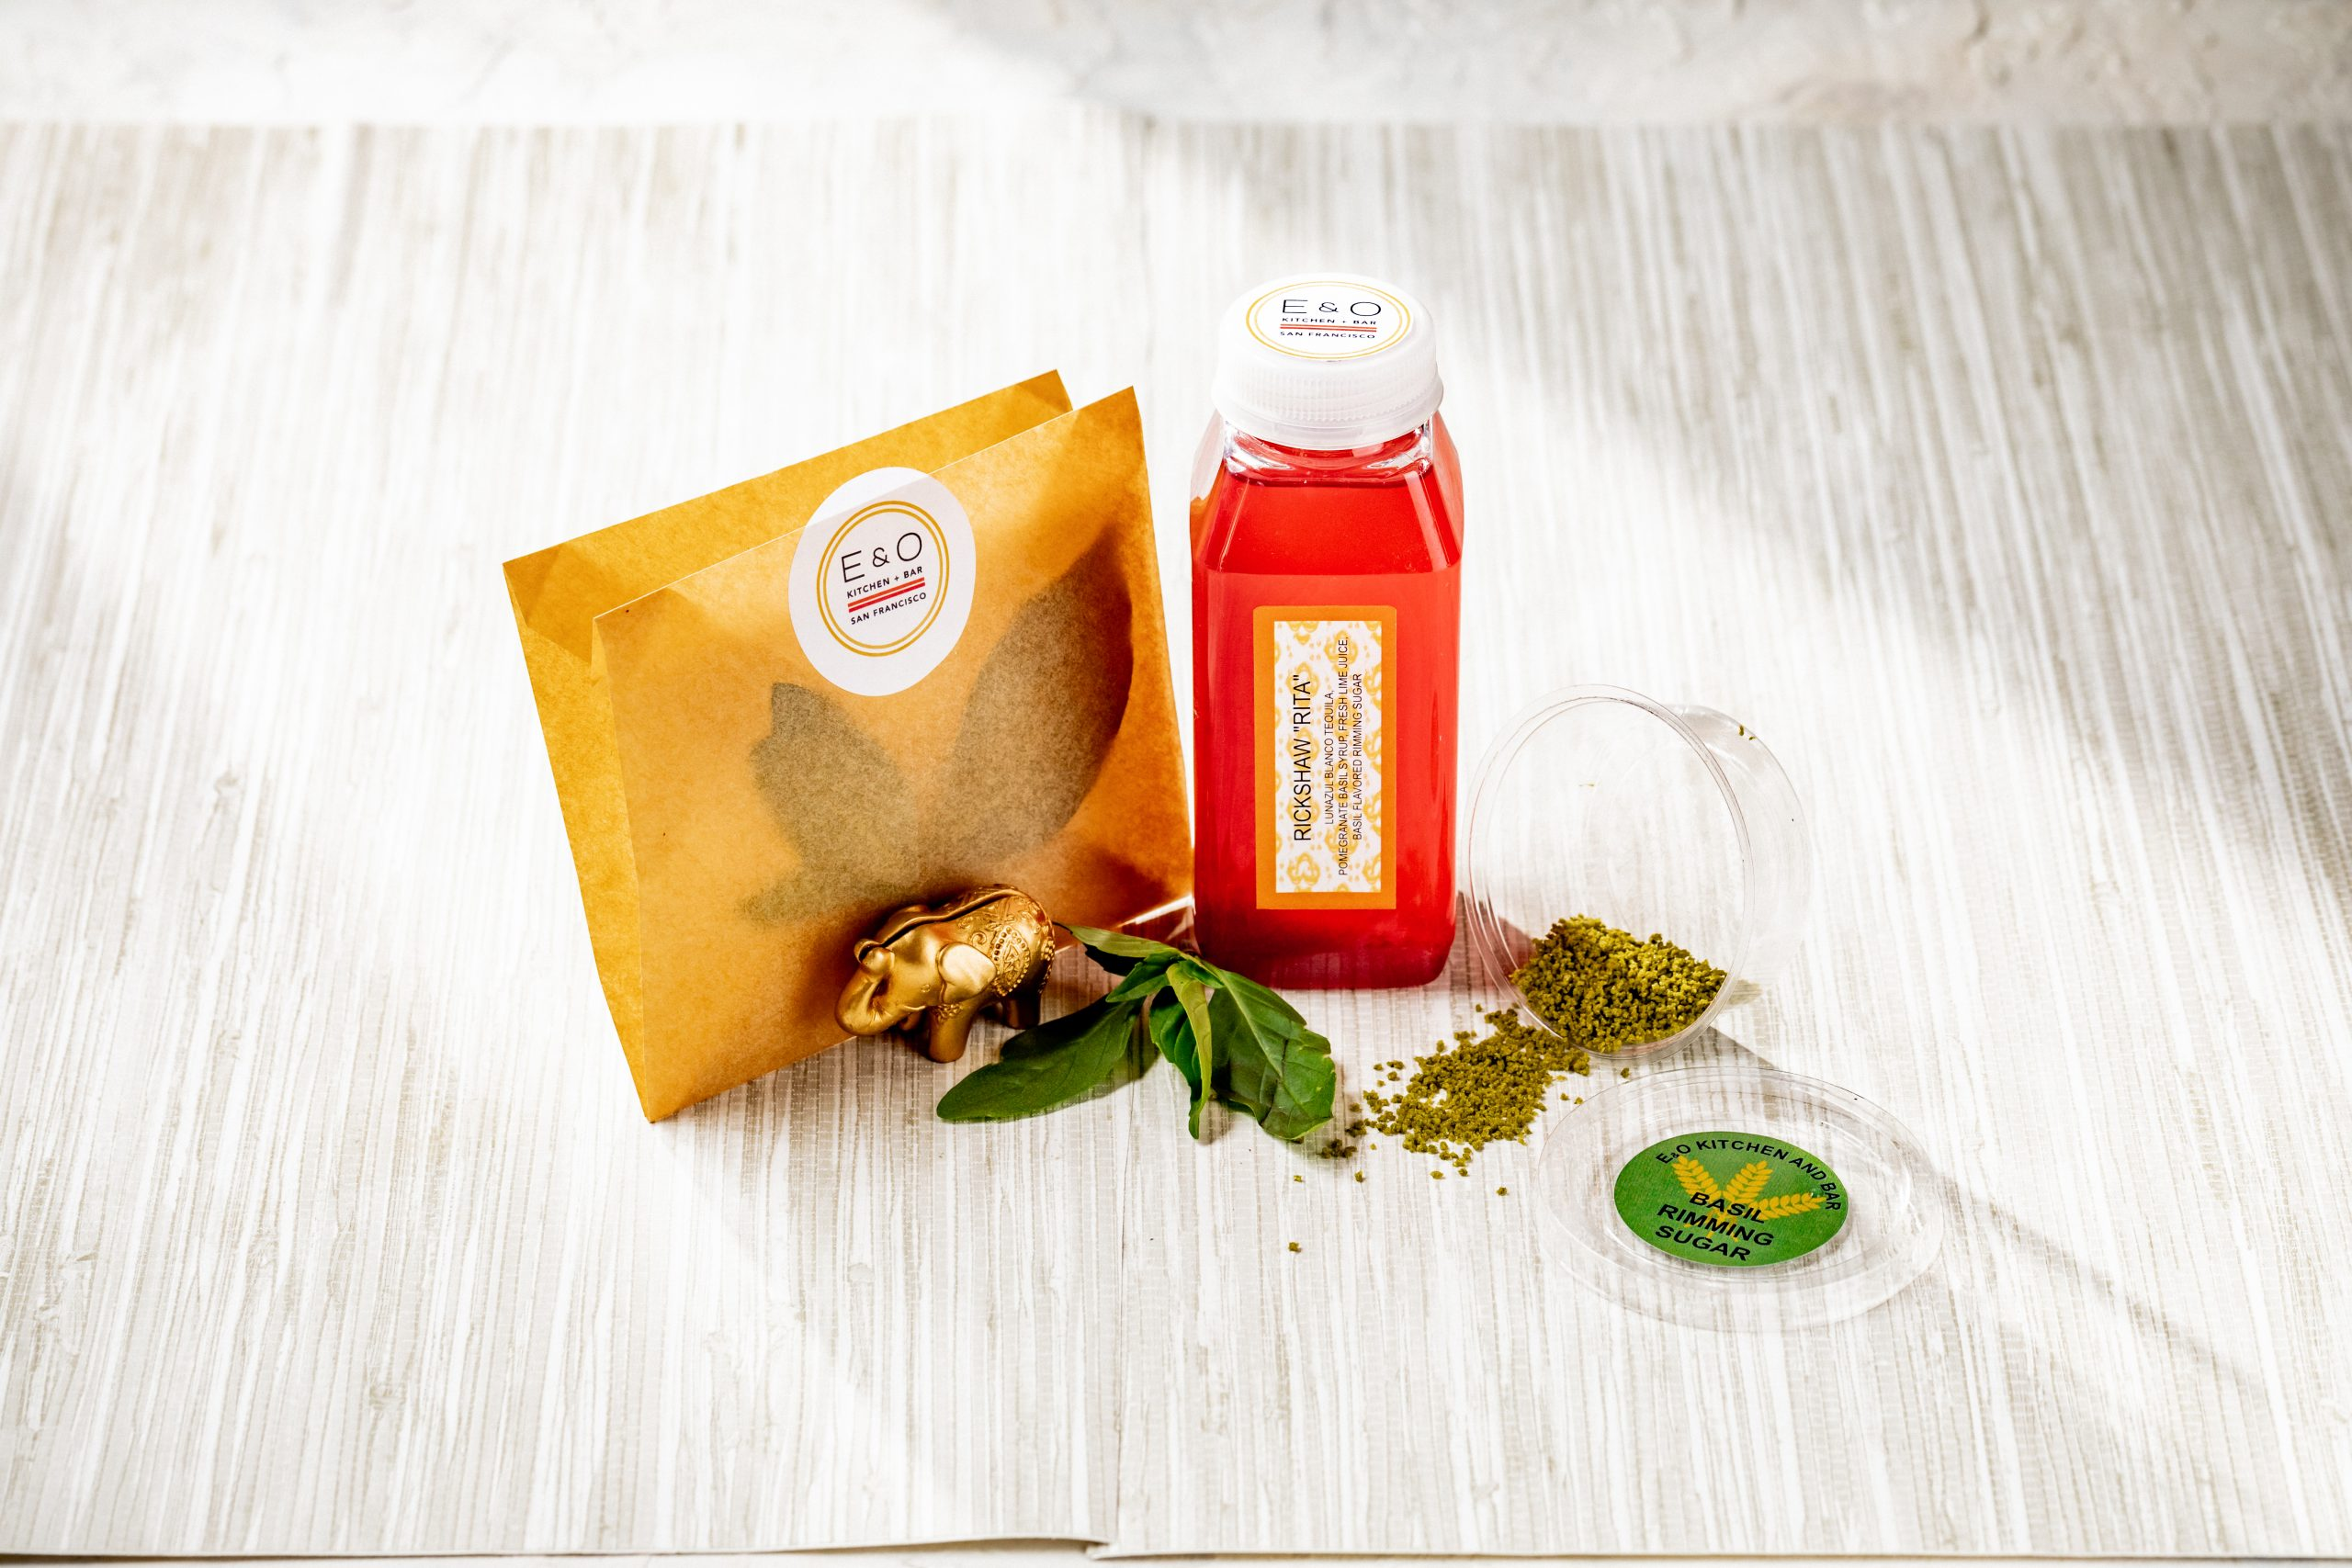 a to-go drink in a bottle with basil riming suge in a smal container and mint leaves for garnish in an envelope